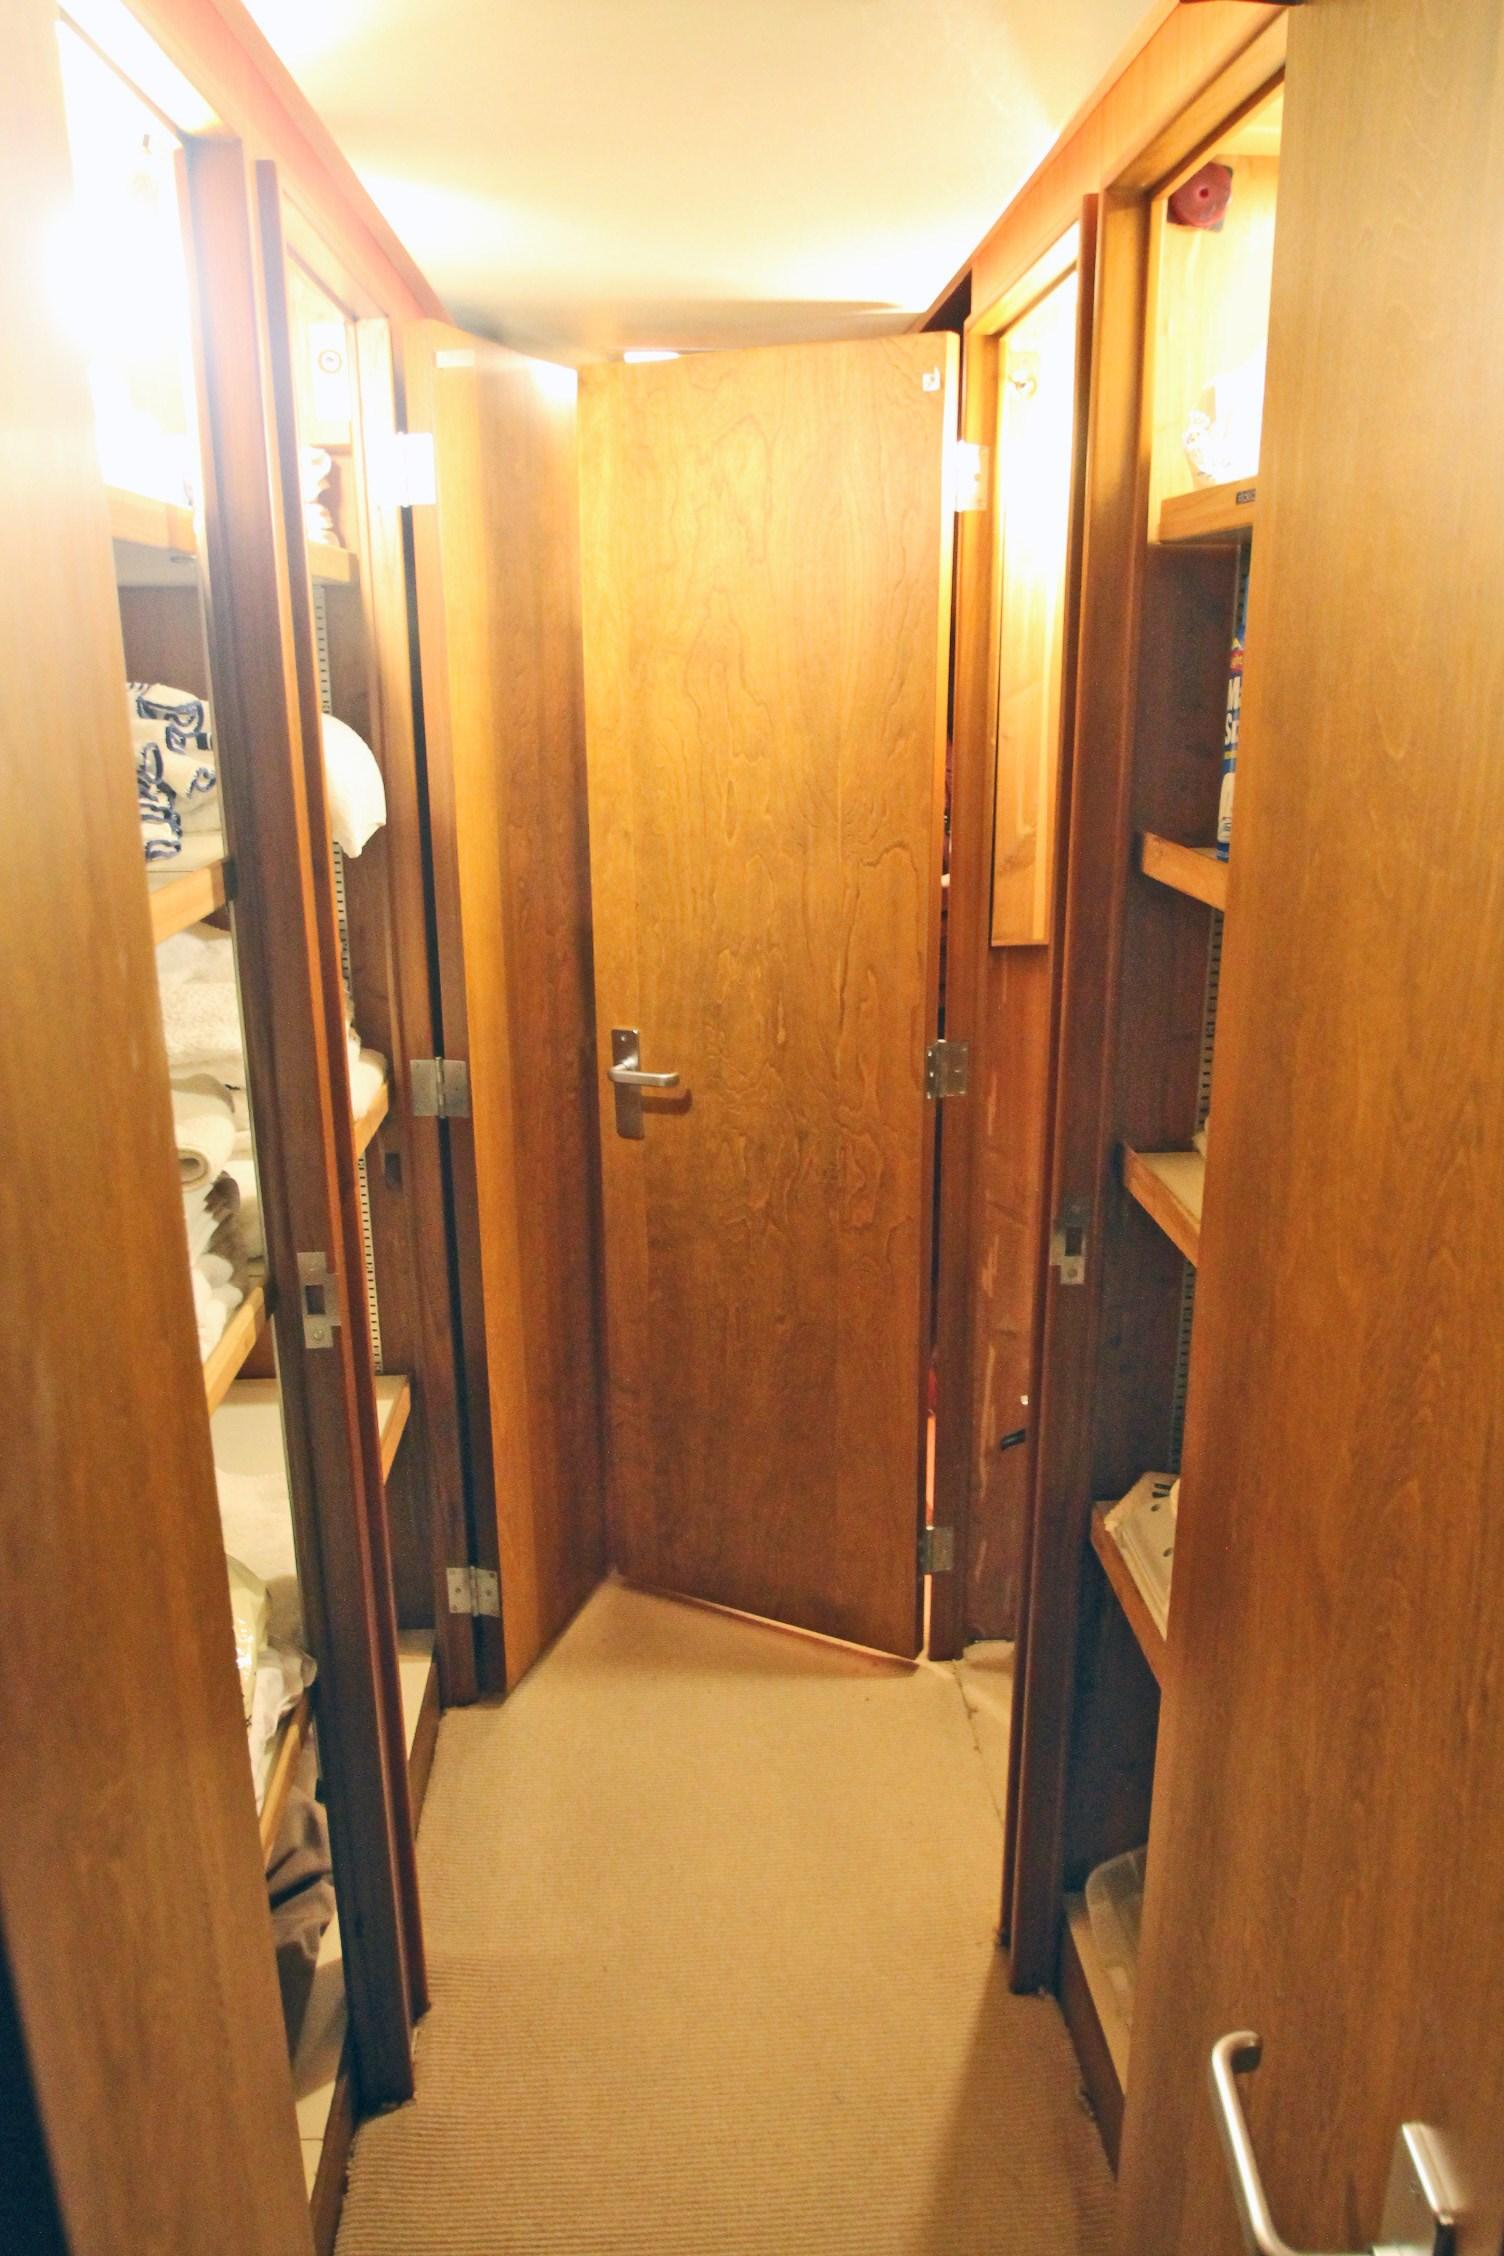 86 Burger Companion Way Locker on either side